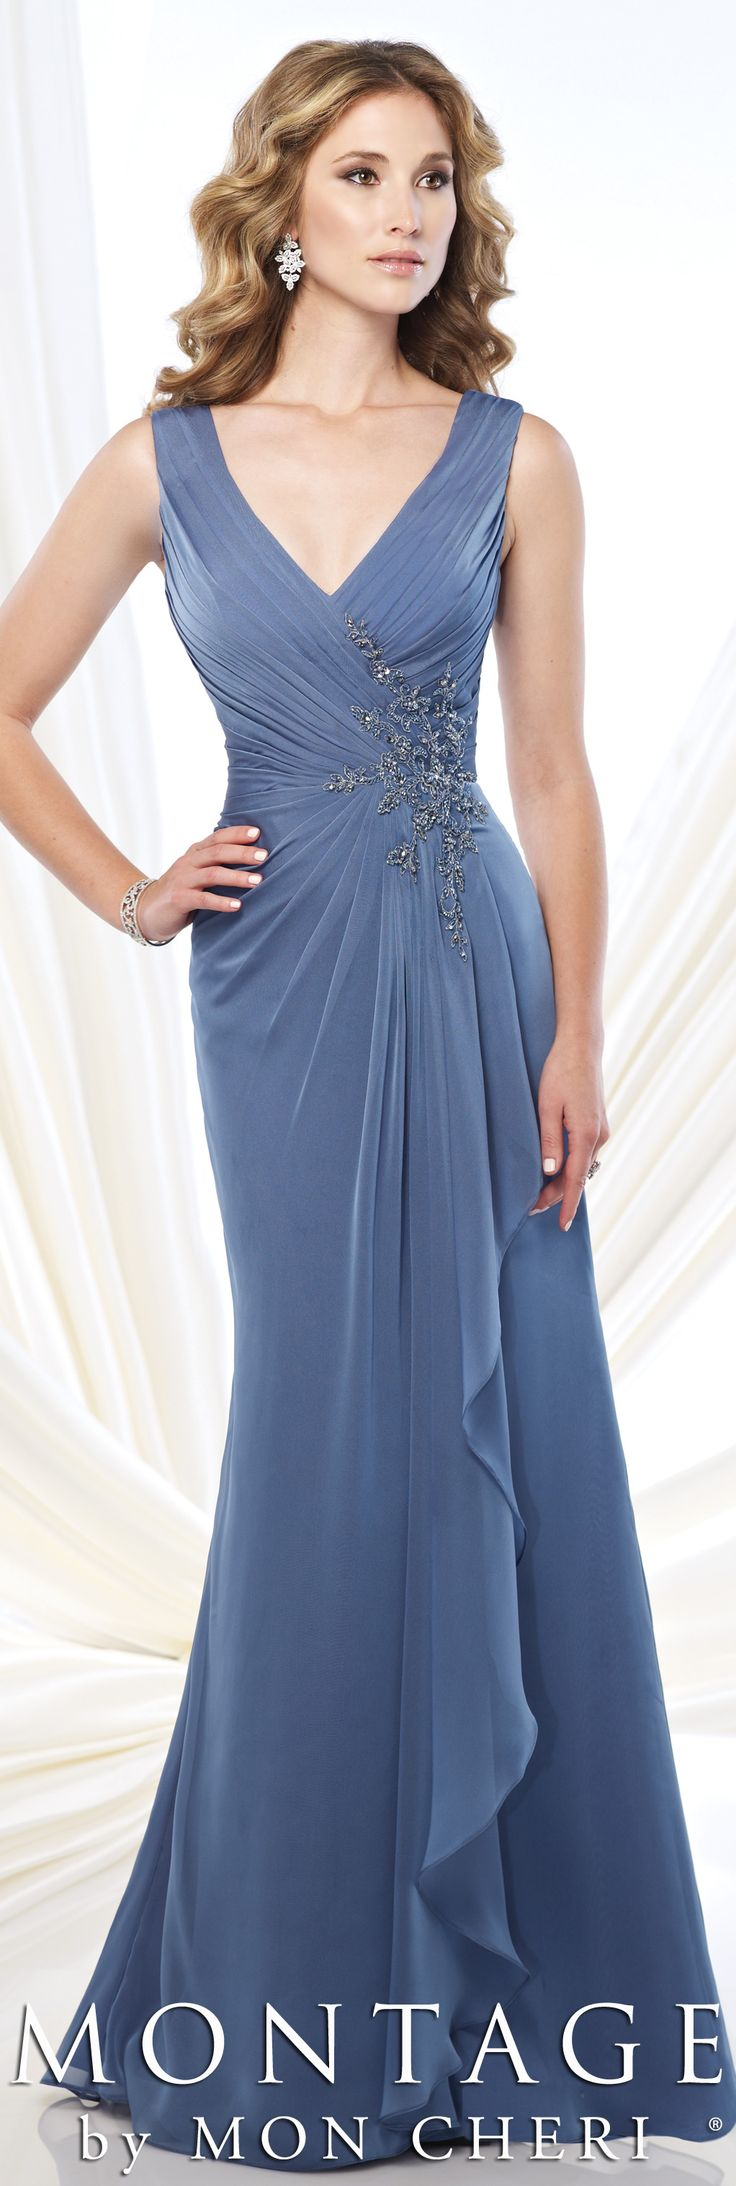 Montage by Mon Cheri Fall 2015 - Style No. 215907 #motherofthebridedress